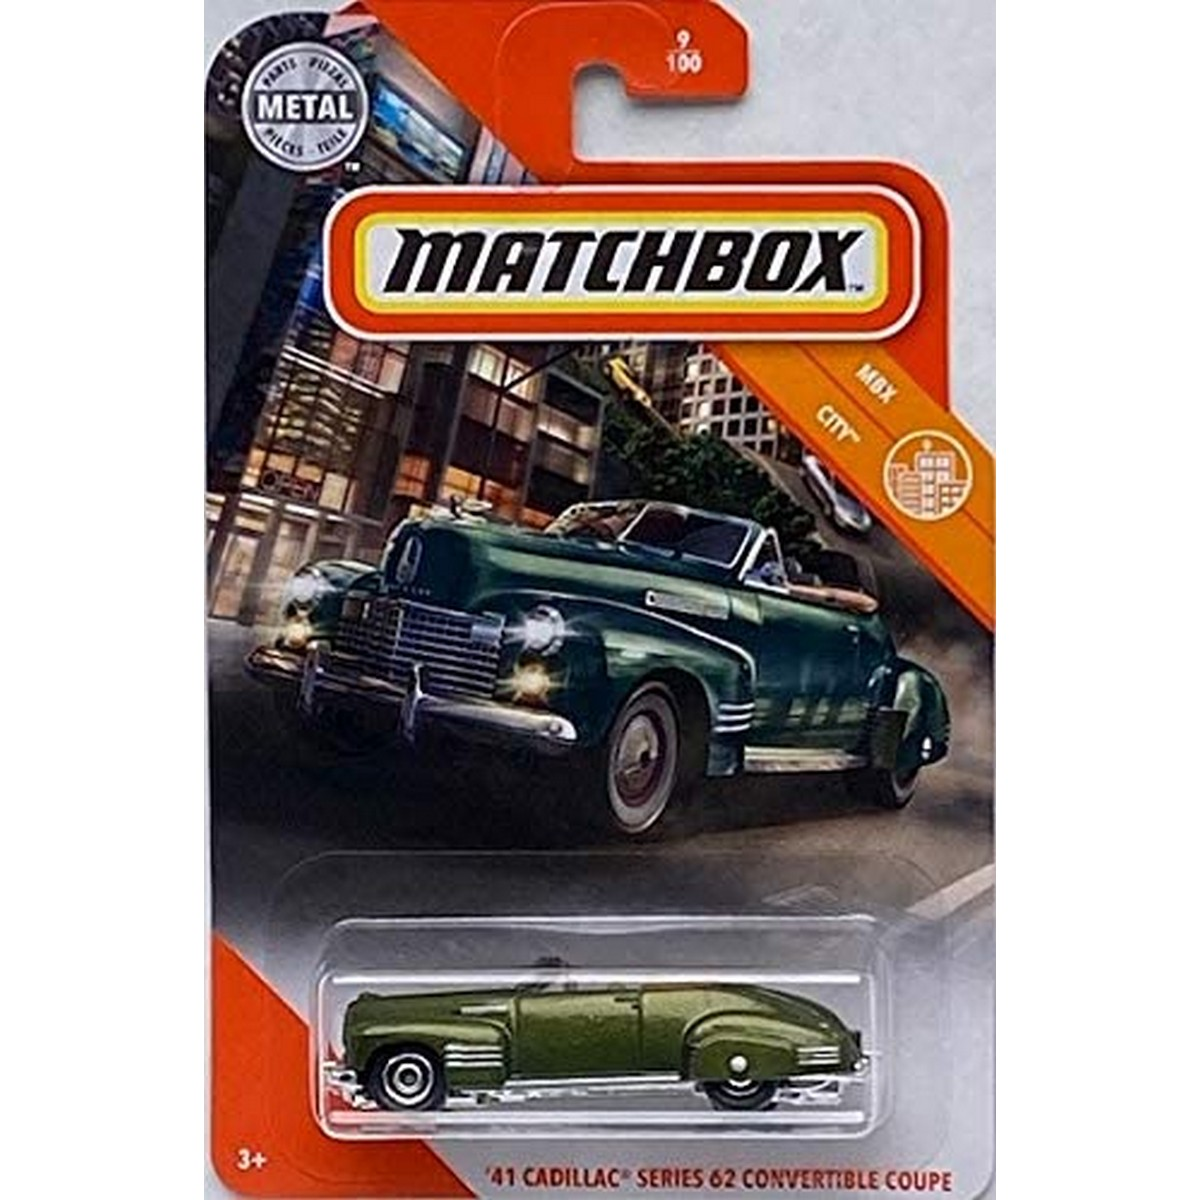 Matchbox 41 Cadillac Series 62 Convertible Coupe - 1/64 scale diecast model